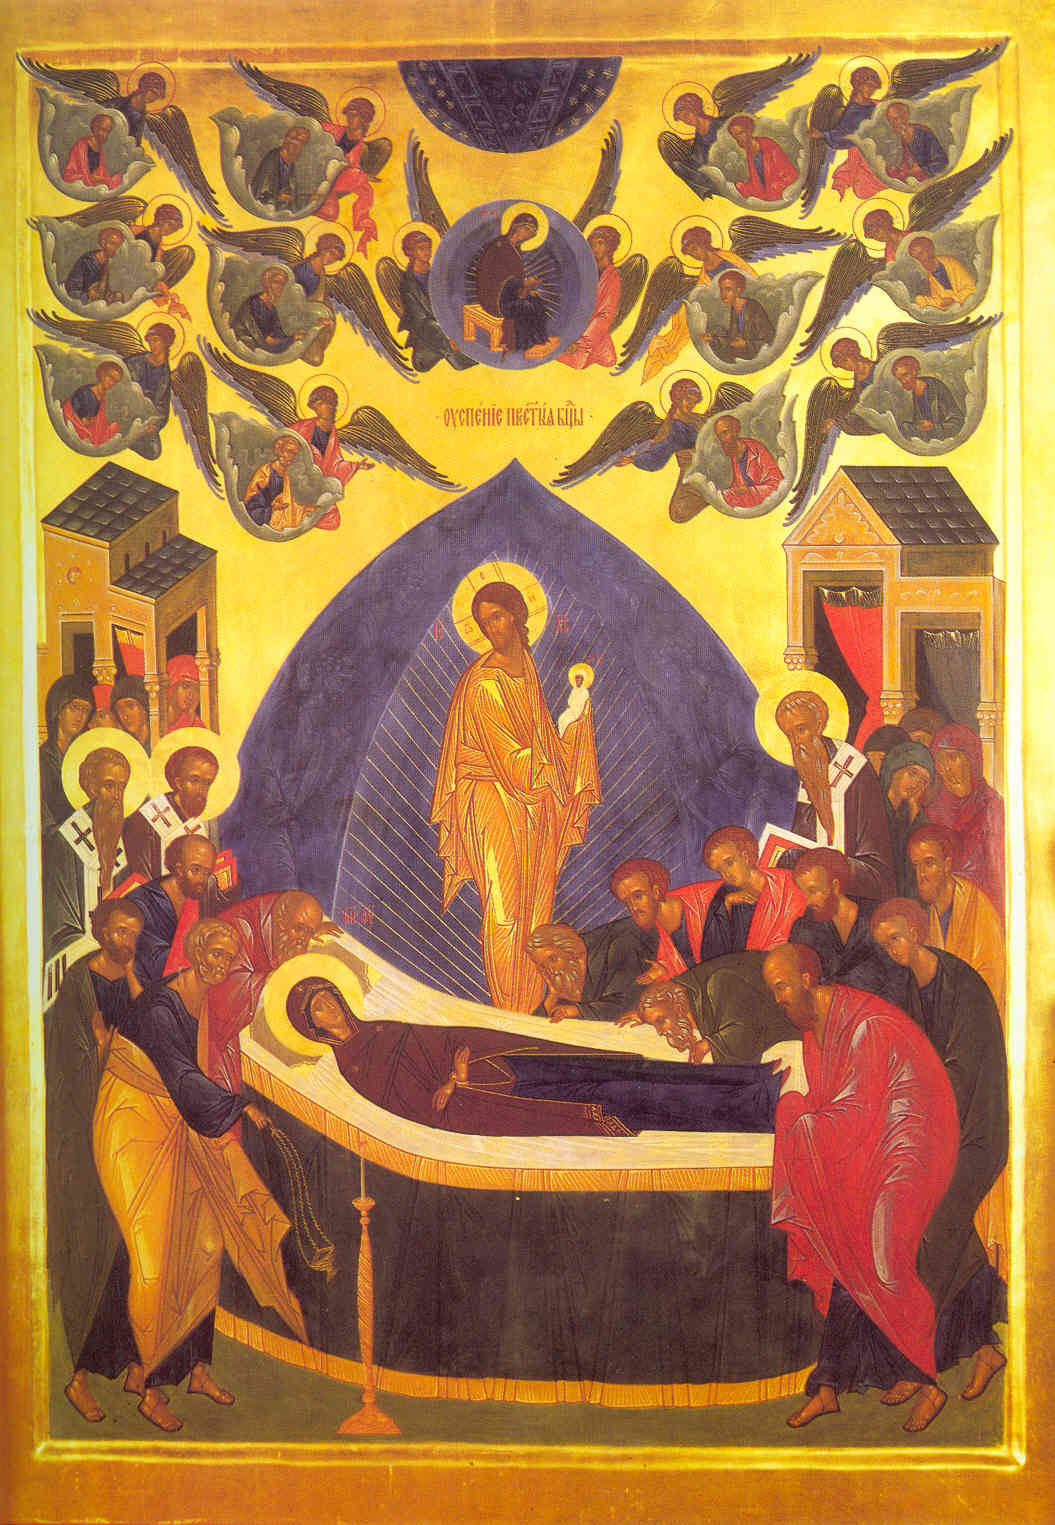 THE FAST OF THE DORMITION OF THE HOLY THEOTOKOS